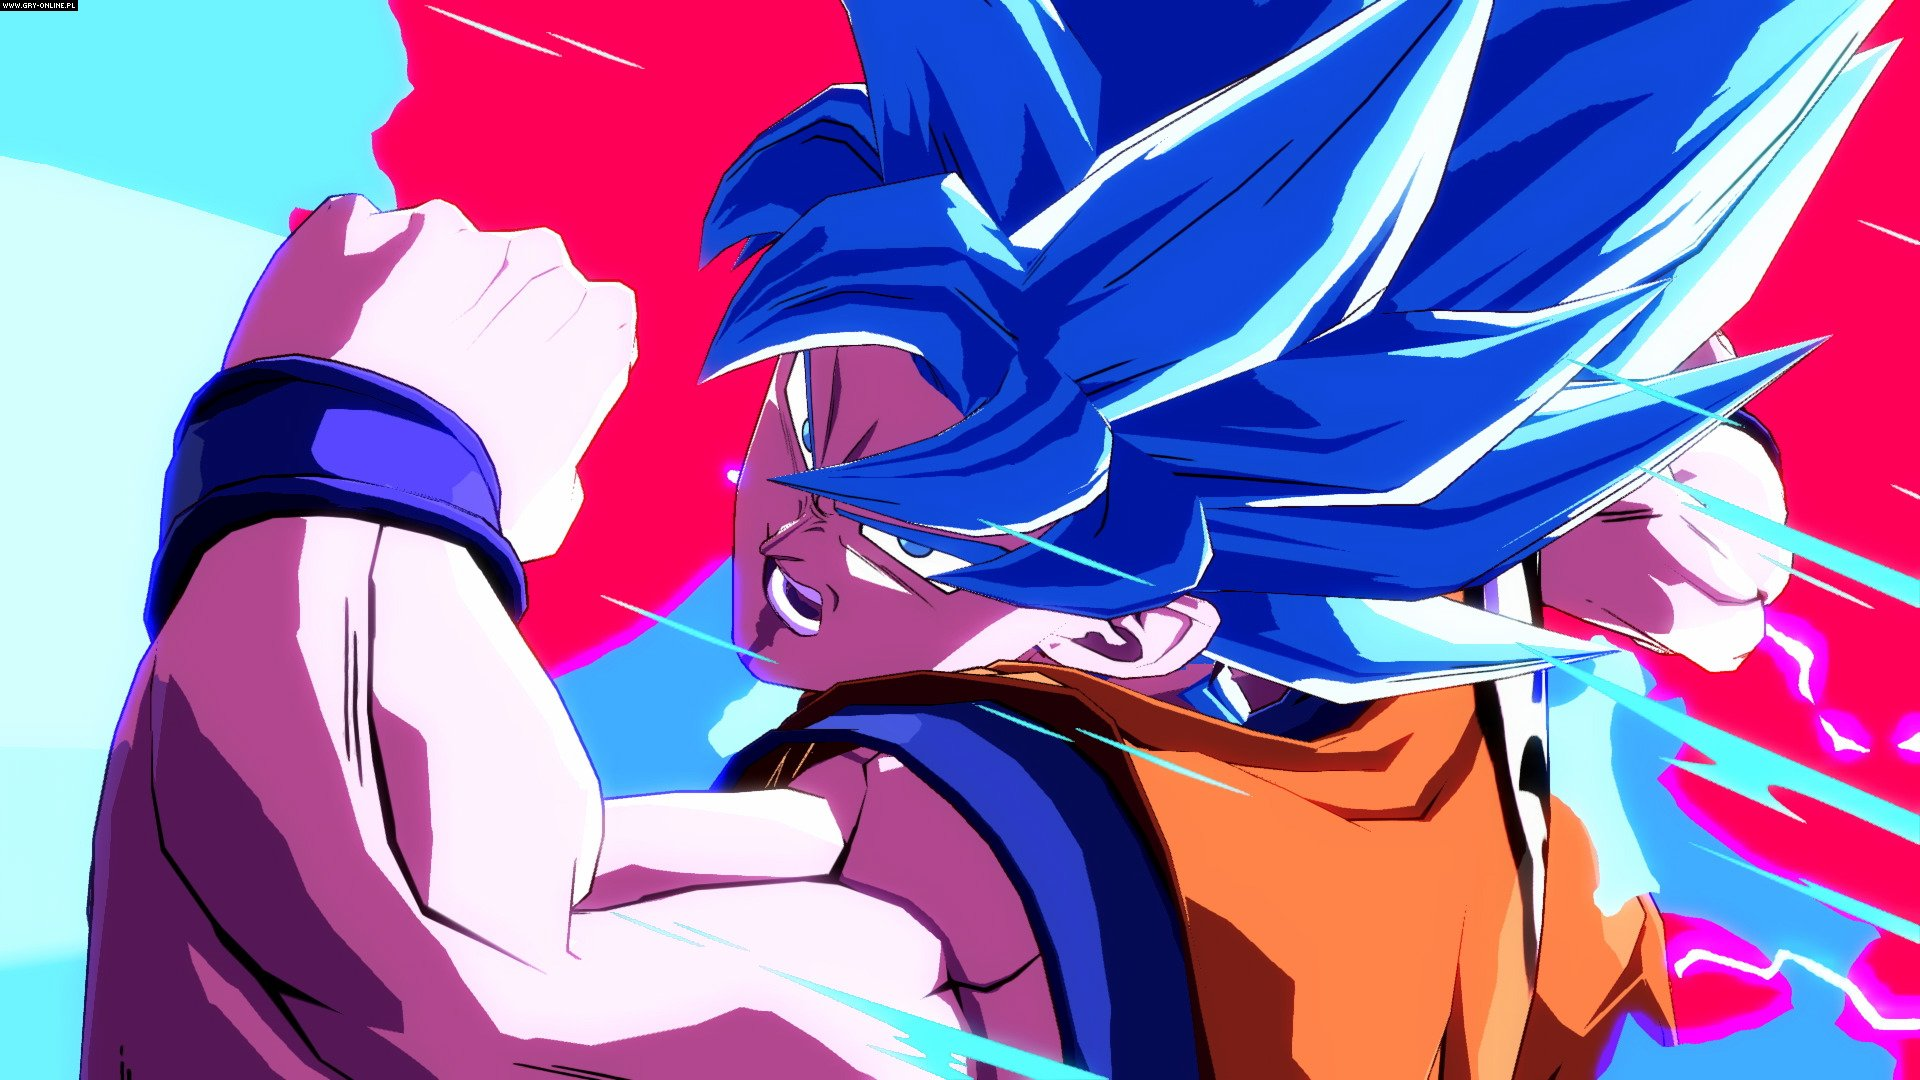 Dragon Ball FighterZ PC, PS4, XONE, Switch Gry Screen 37/230, Arc System Works, Bandai Namco Entertainment